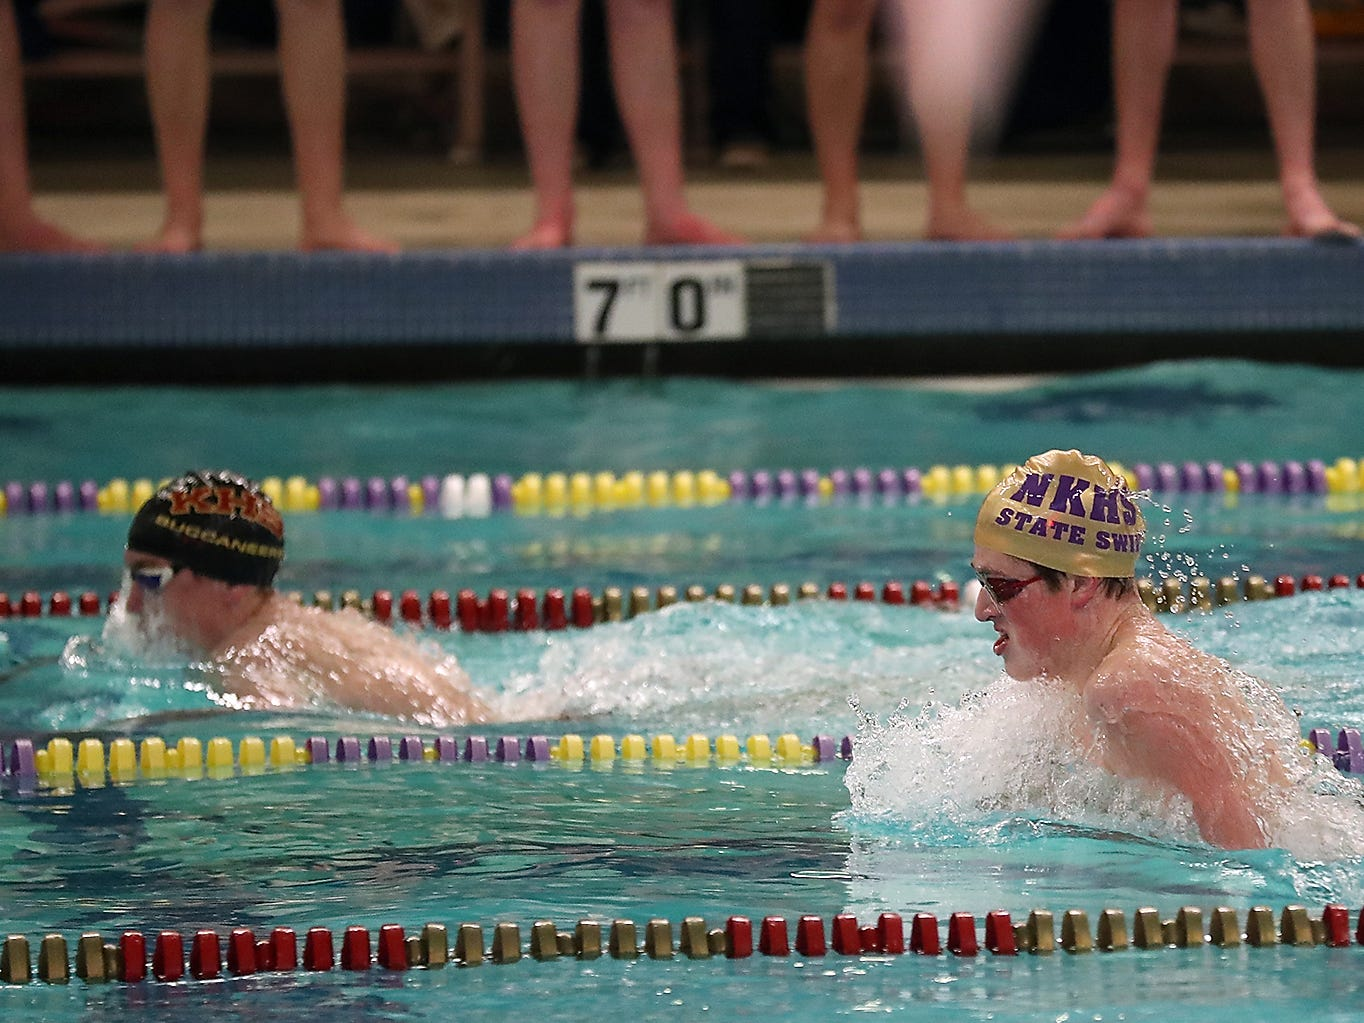 North Kitsap's Nathan Ramey (right) competes in the 200 Yard IM during their meet against Kingston on Thursday, January 24, 2019.